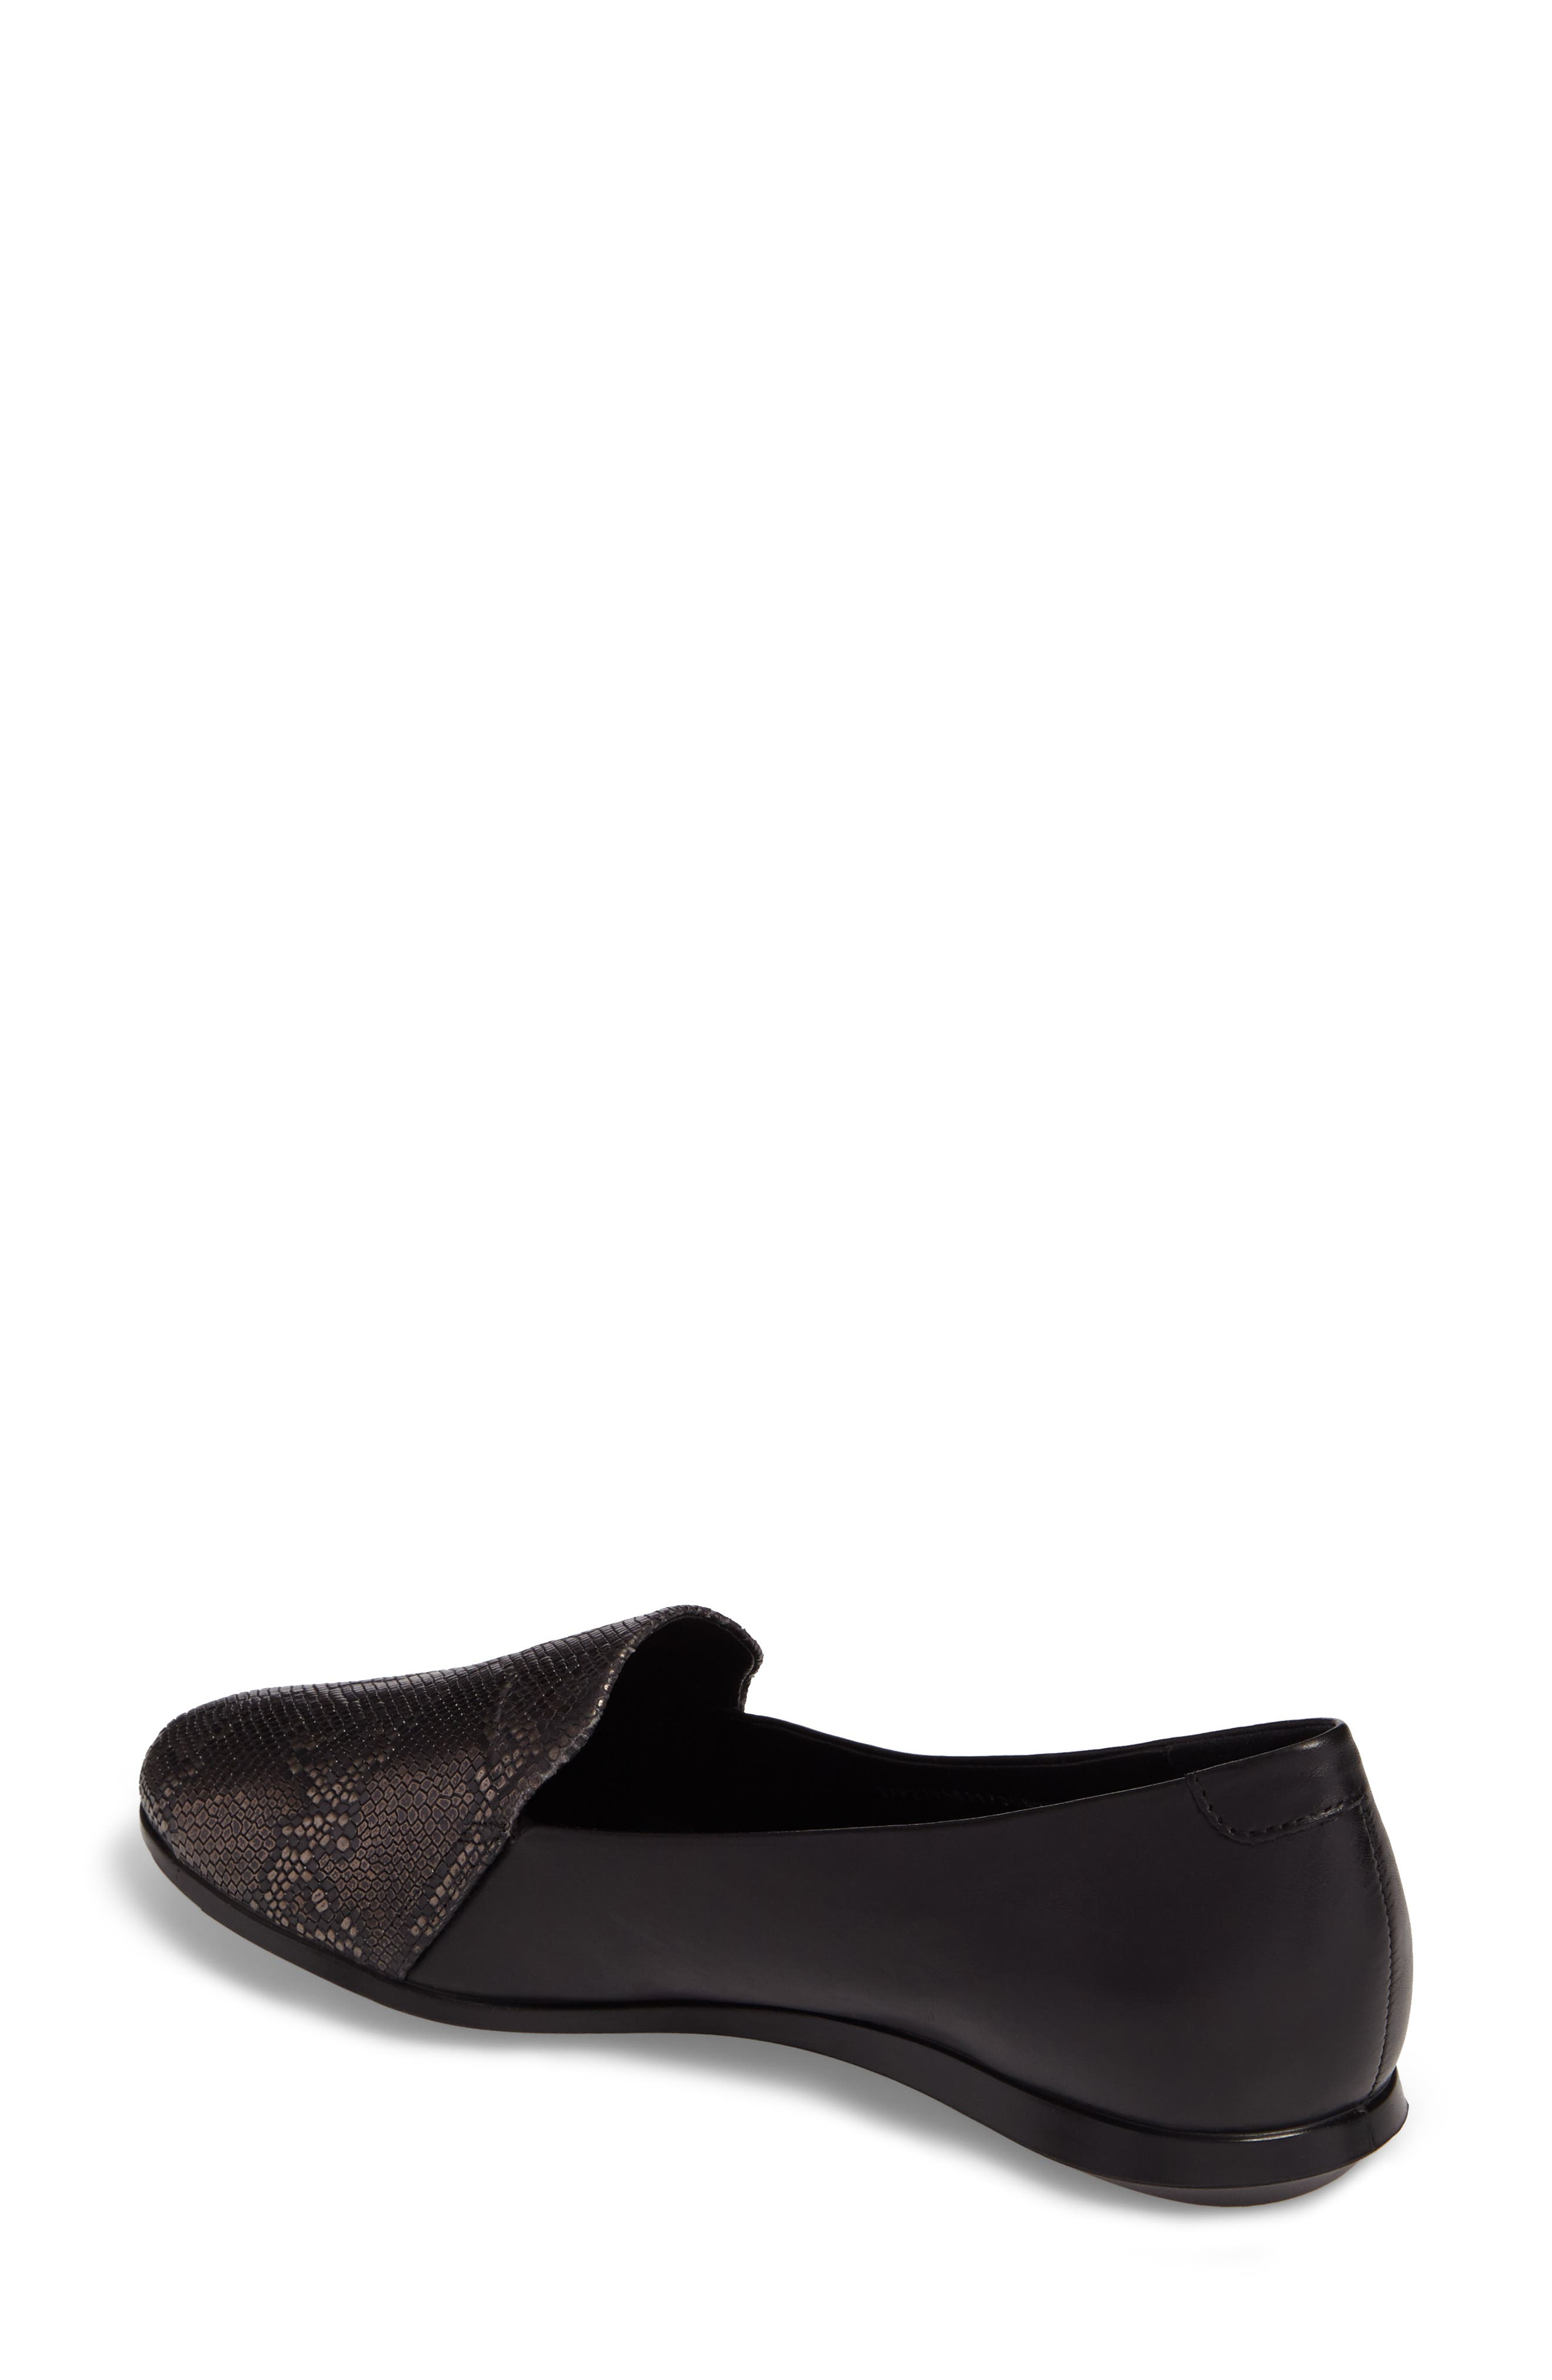 Touch 2.0 Scale Embossed Loafer Flat,                             Alternate thumbnail 2, color,                             DARK SHADOW LEATHER